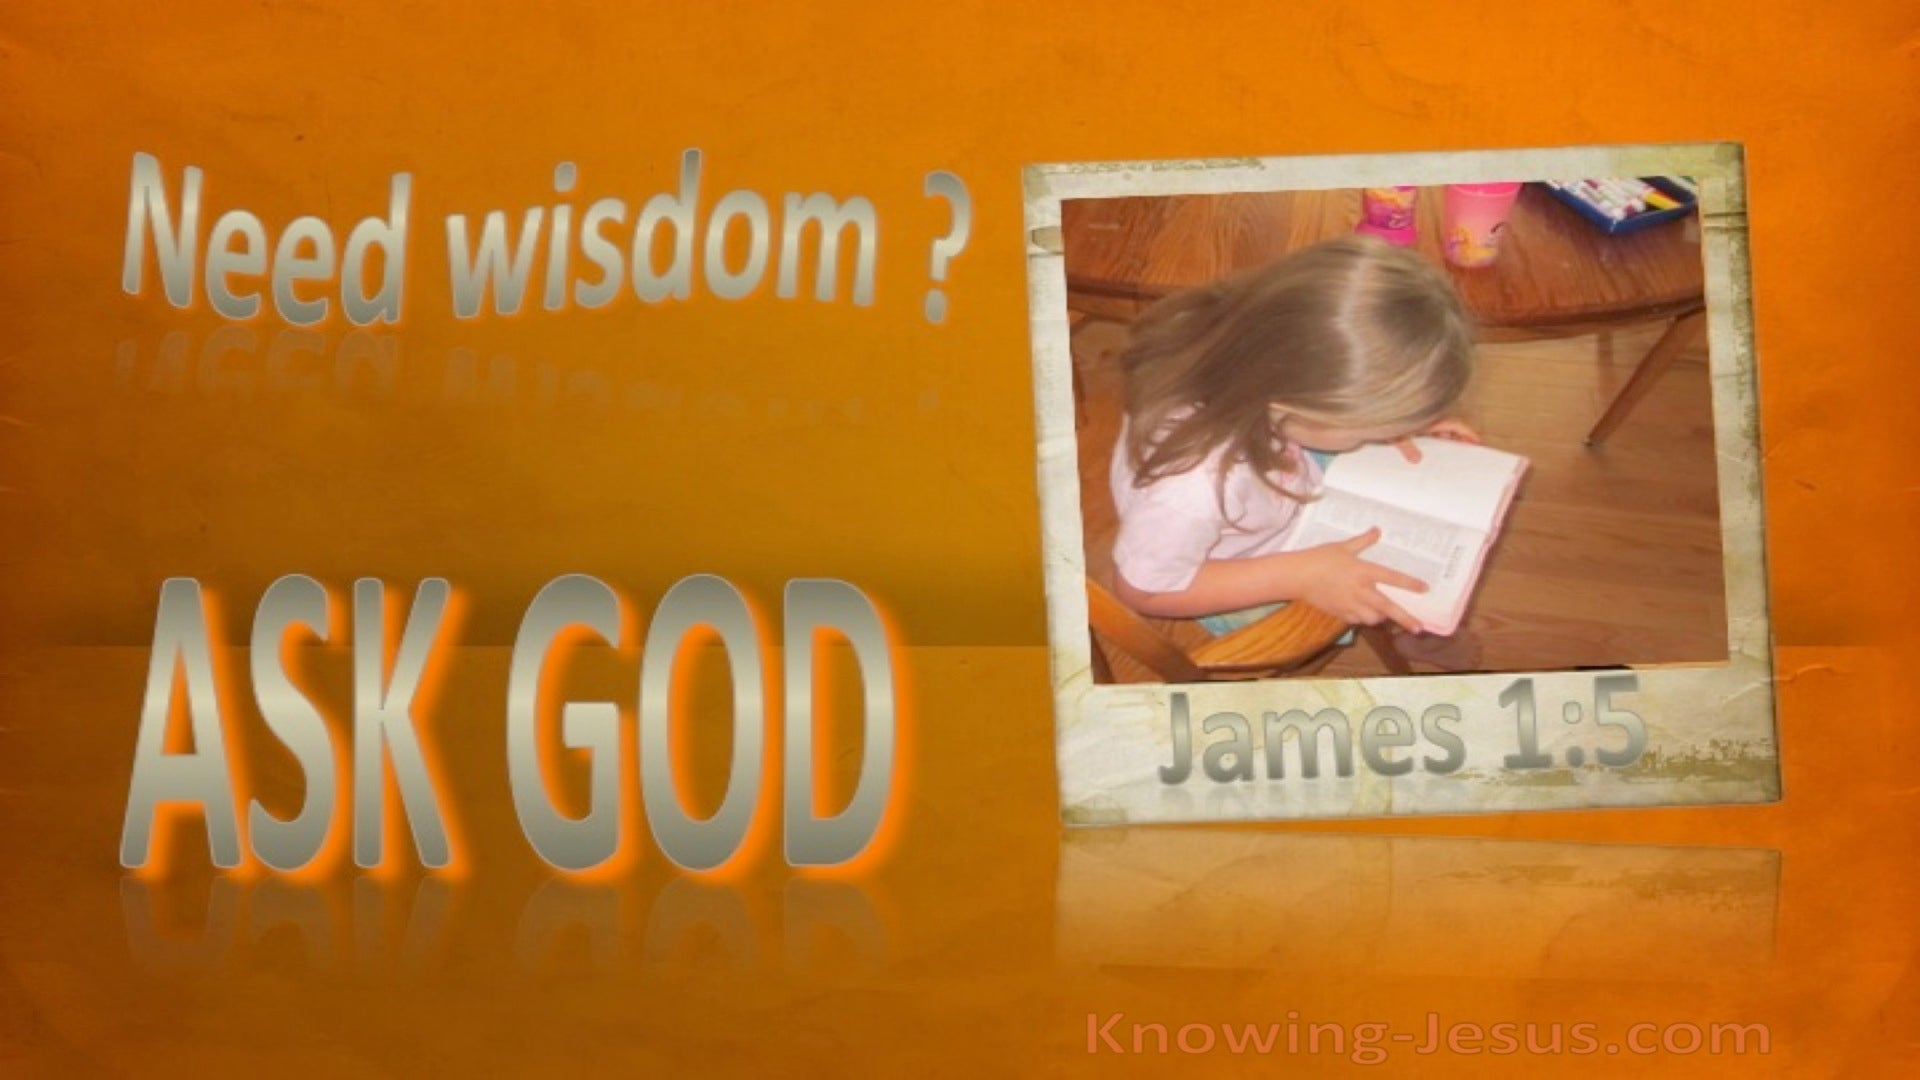 James 1:5 Seek Wisdom Ask God (orange)